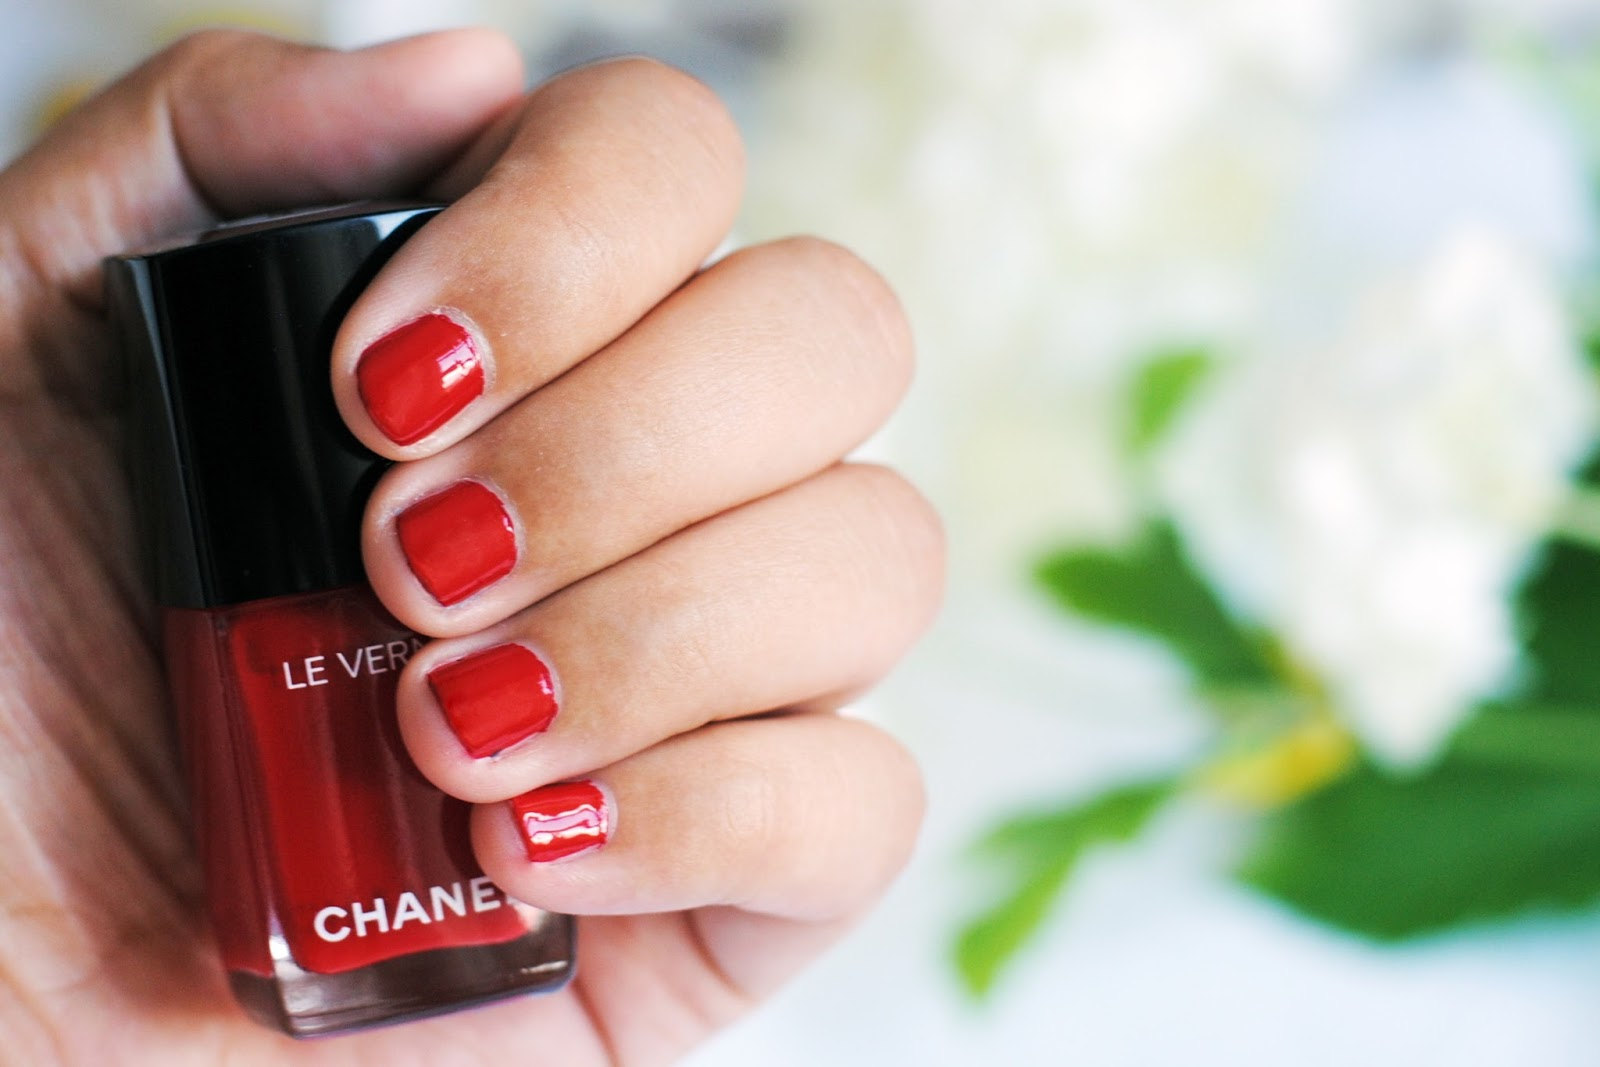 3ff066b7f3e I have always liked Chanel nail polishes. The only bad remark they often  got was that they didn t last long. The new Chanel Le Vernis Longue Tenue  is